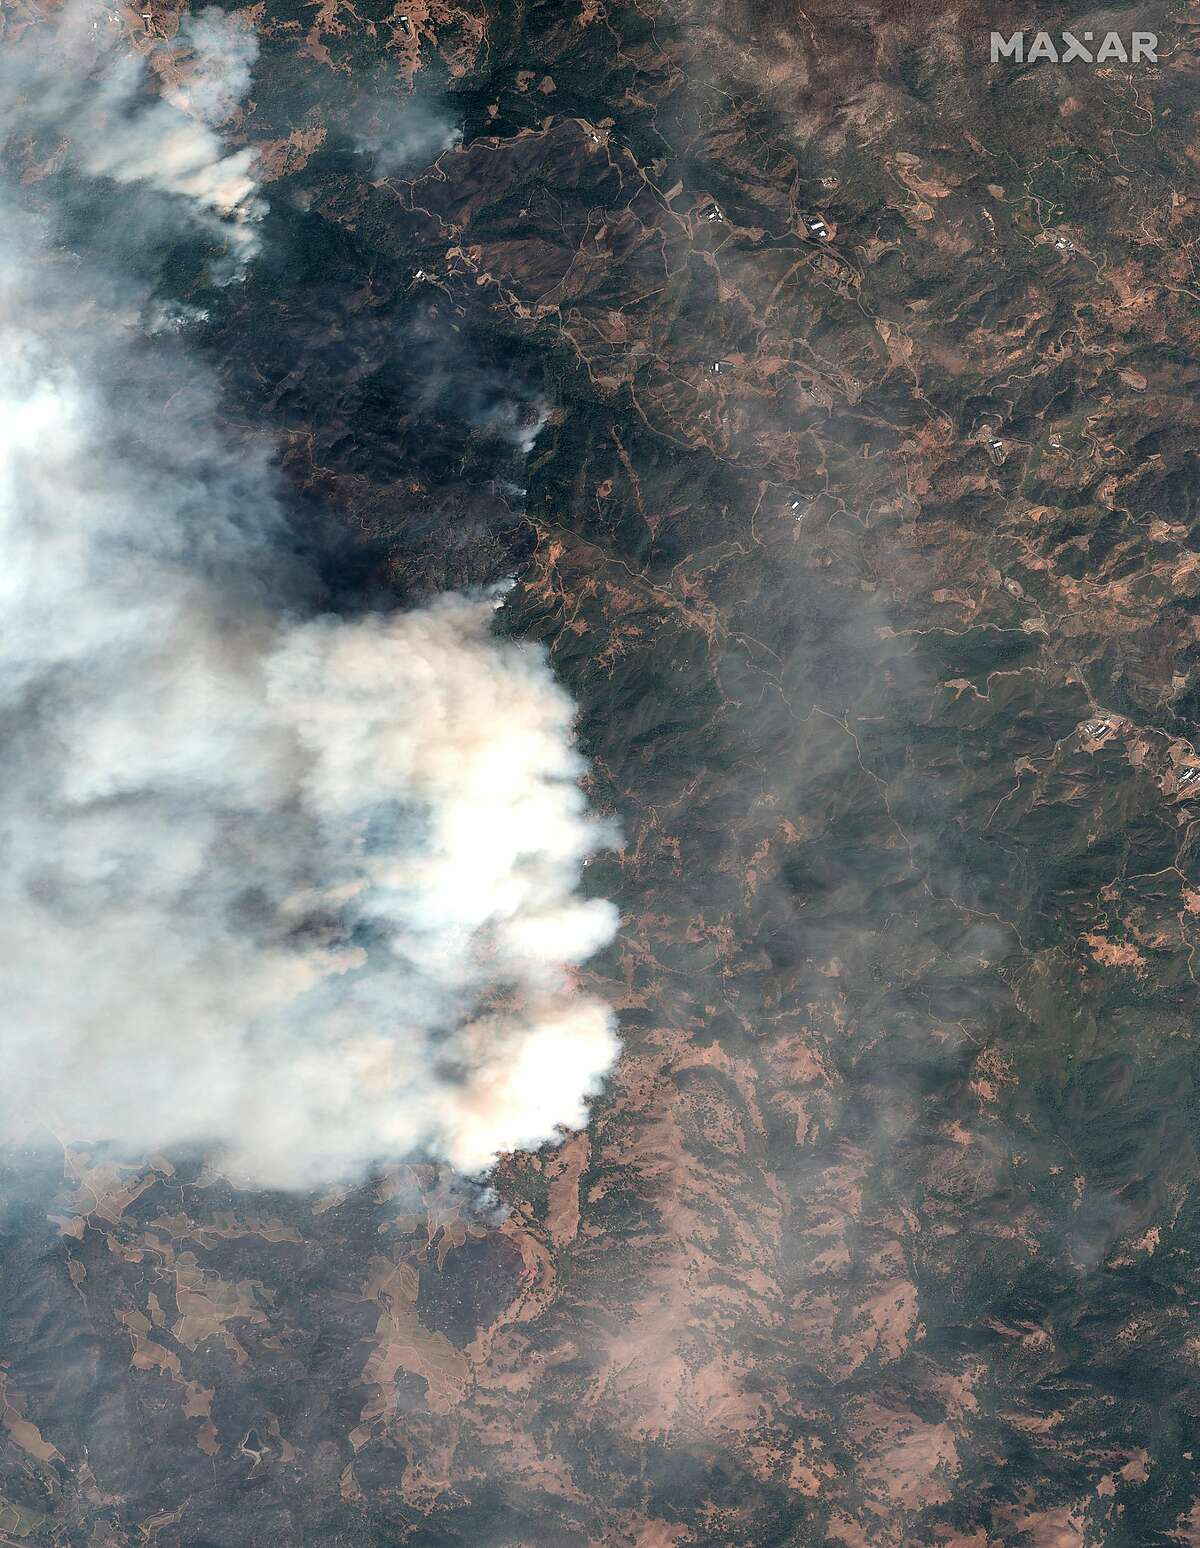 This satellite image provided by Maxar Technologies shows a wildfire burning in Sonoma County, Calif., on Thursday, Oct. 24, 2019. The fire that began Wednesday night in wine country has burned dozens of buildings and prompted evacuation orders in the Geyserville area.